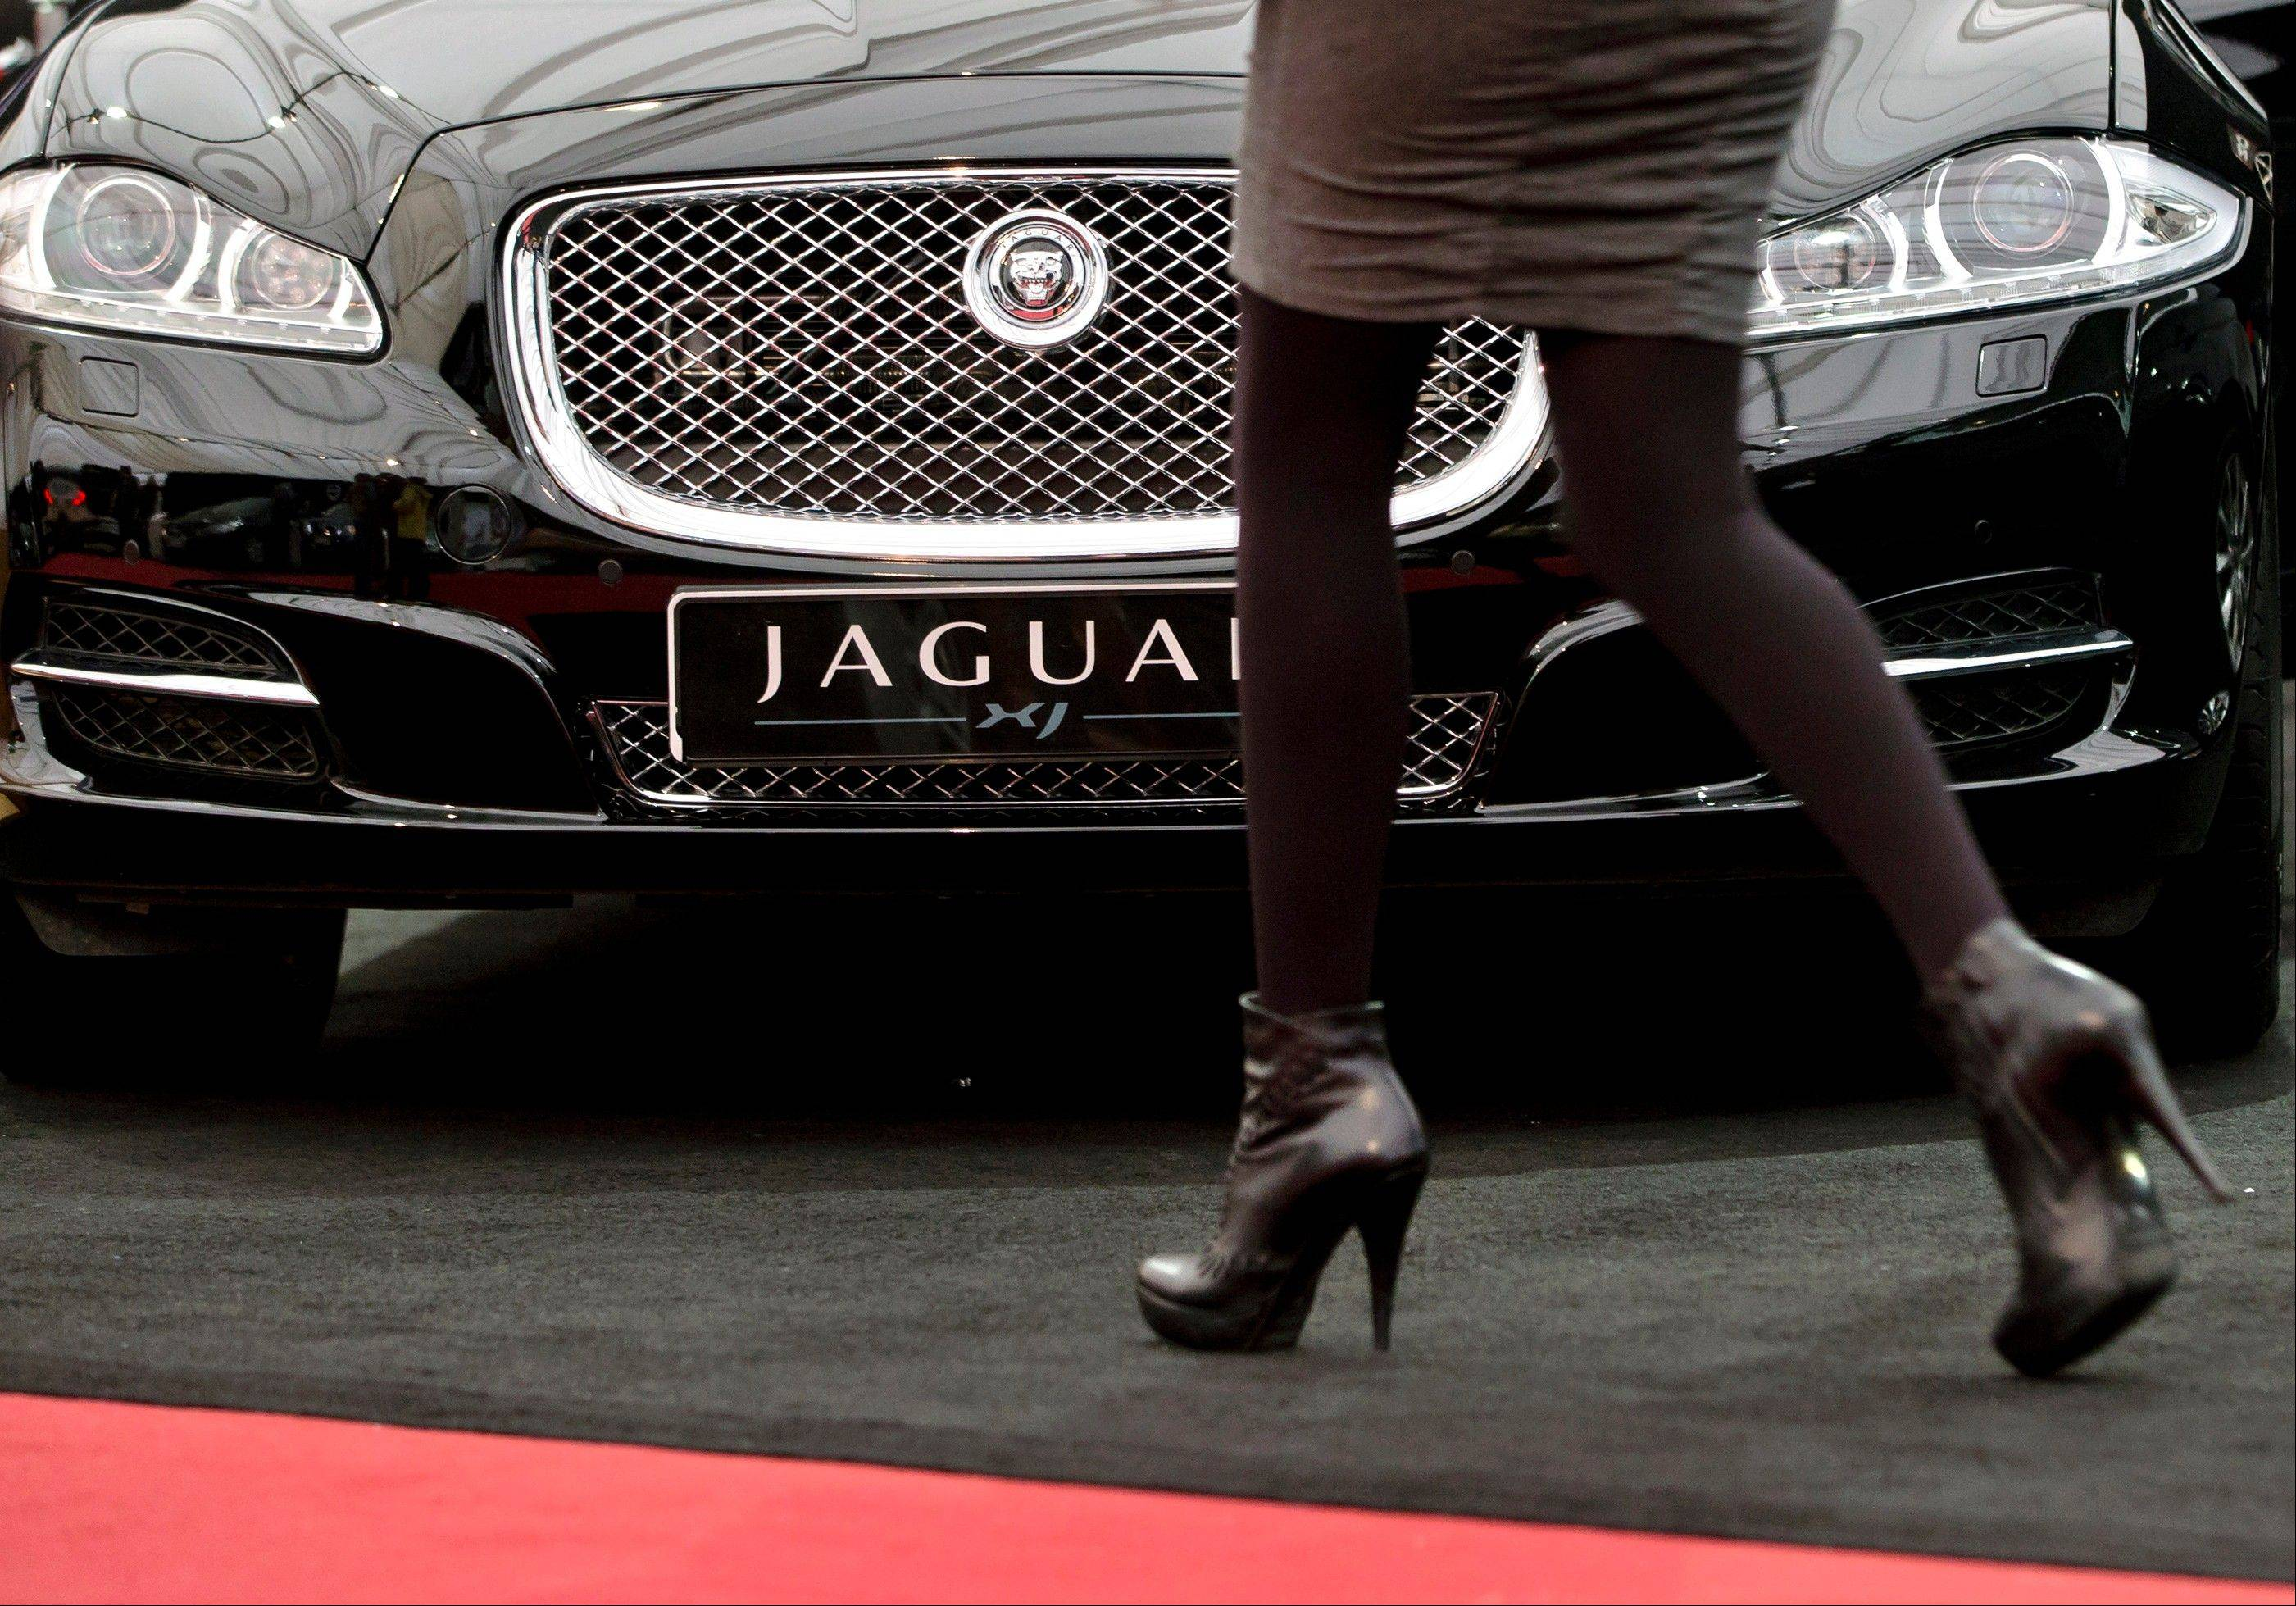 A woman passes by a Jaguar XJ during an Auto Moto Show in Bucharest, Romania. Women now buy nearly half the new cars in the U.S.